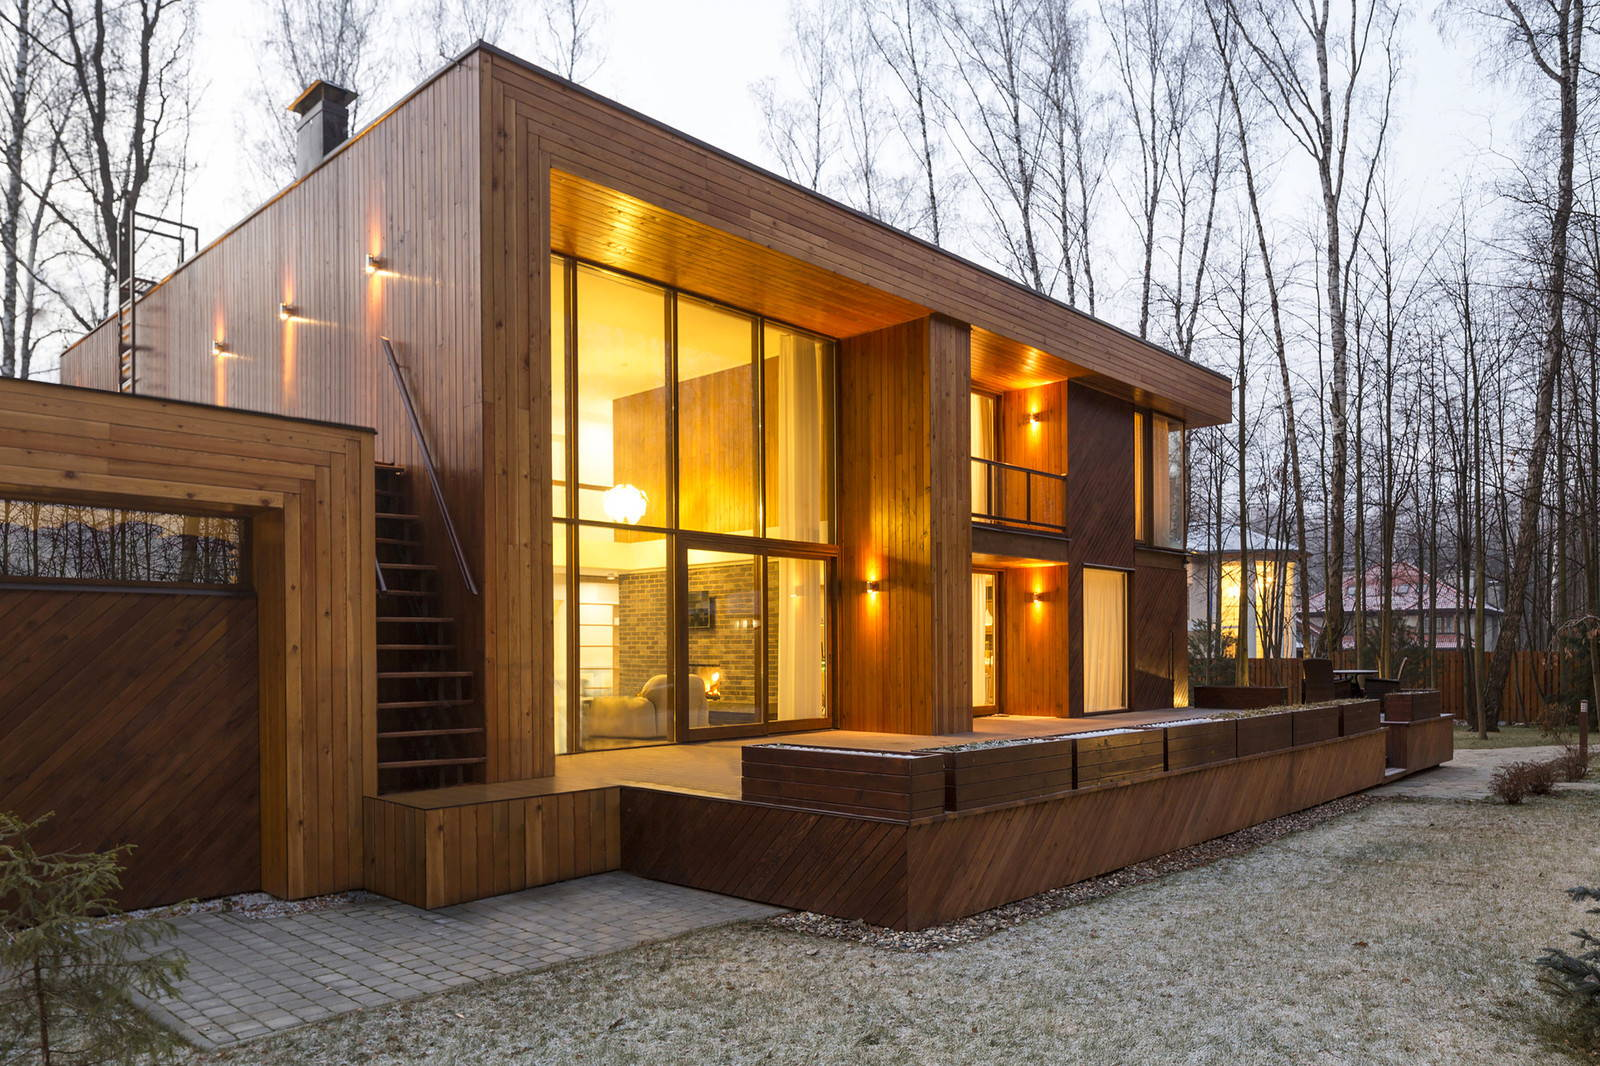 Modern-private-house-just3ds.com-4